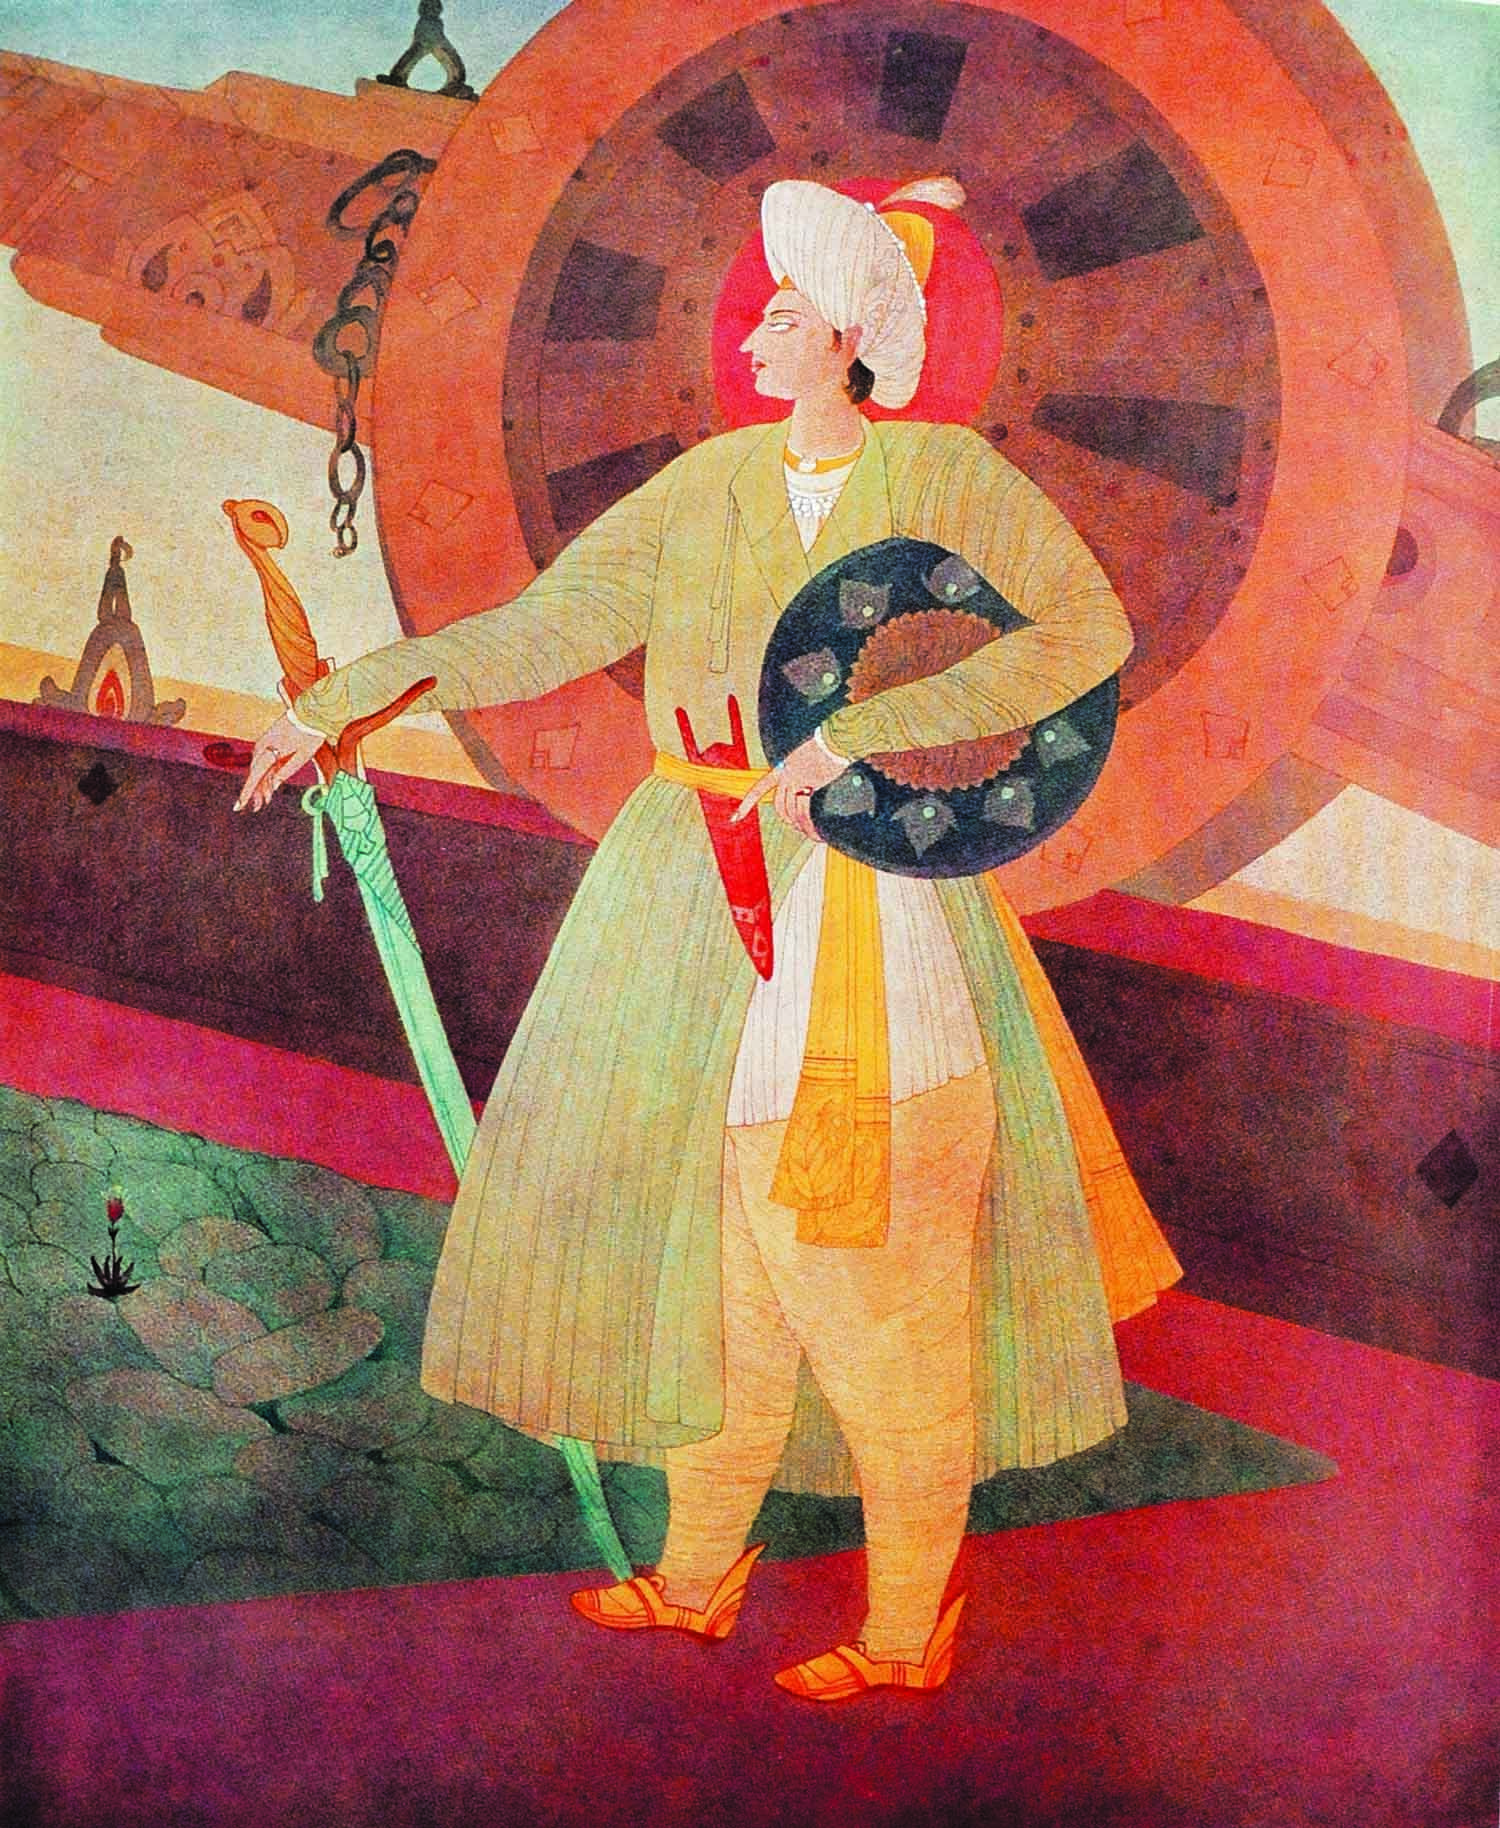 *Like eagles, should be thy life, thy death,/ Eternity lies in the breath of life,/ I do not seek to discover its length. What is Eternity's law and principle? The single breath of a tiger/ Is better than a century lived by a sheep.* In Tipu's magnificent watercolour, *Sultan Shaheed*, Chughtai captures the valour in war of this much-admired monarch, who chose to live the life of a tiger in preference to the mundane drudgery represented by the life of a sheep.